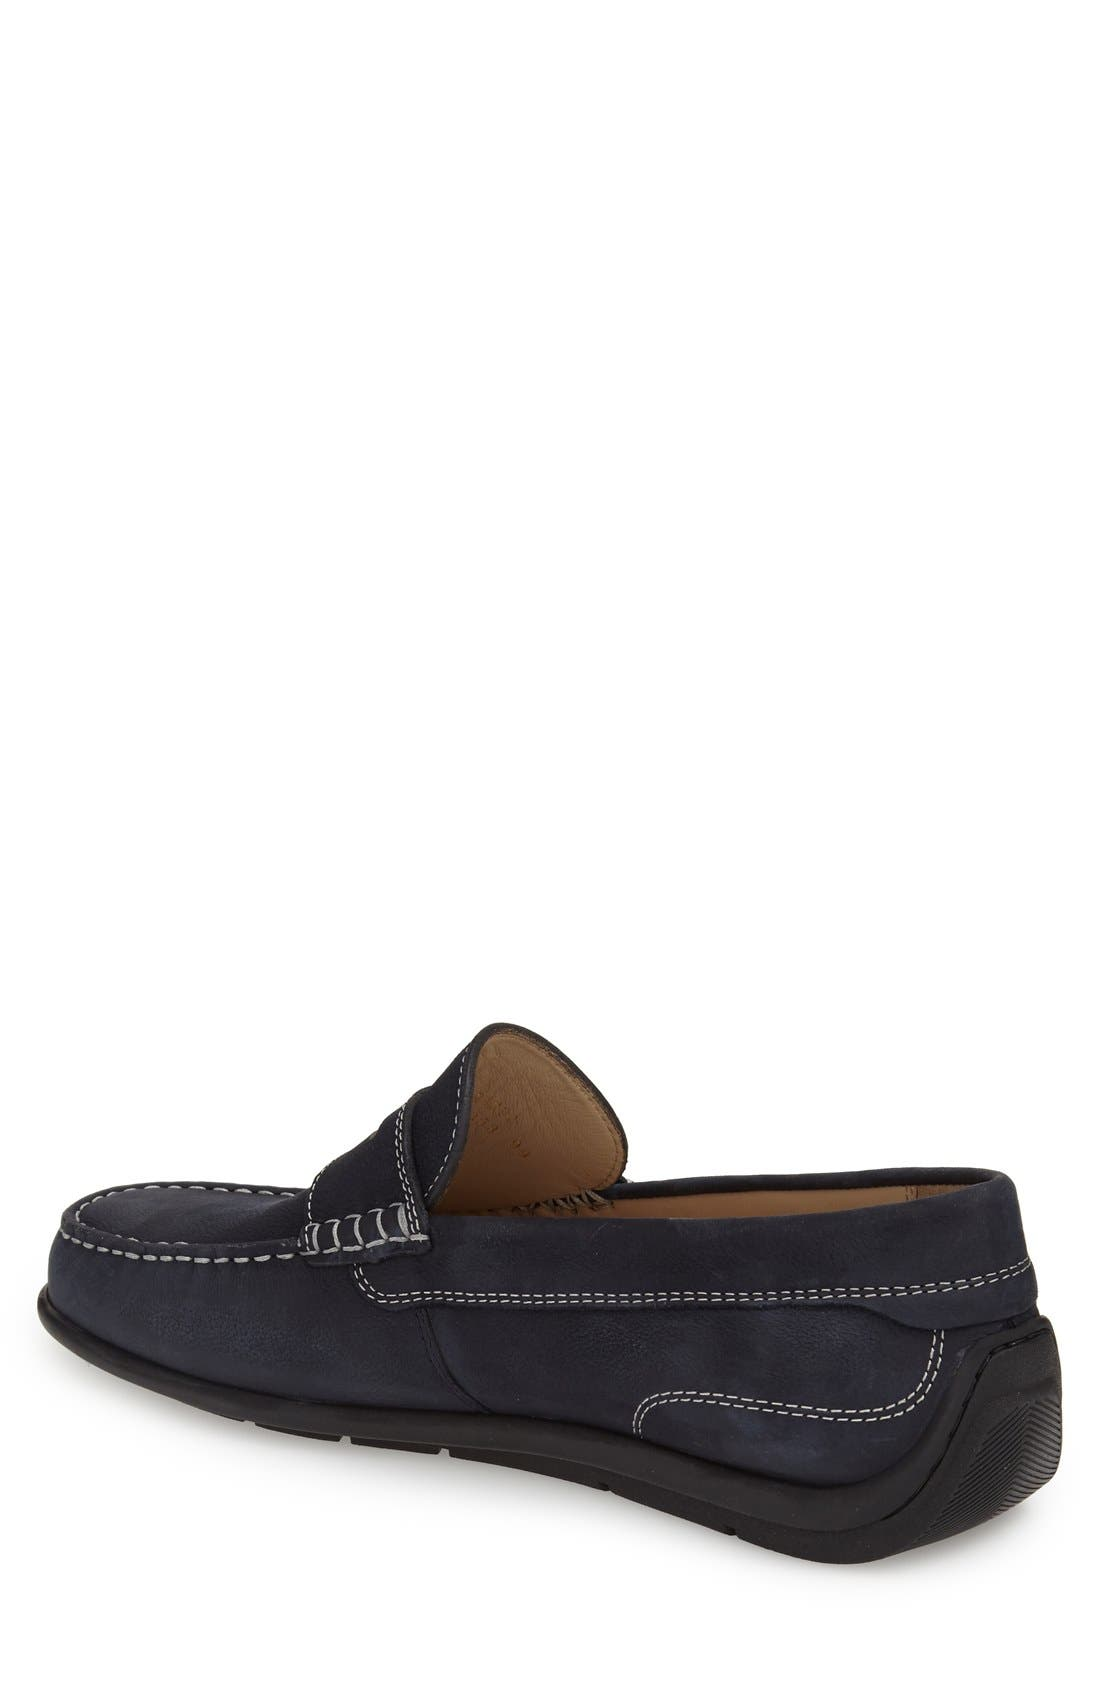 'Classic Moc 2.0' Penny Loafer,                             Alternate thumbnail 15, color,